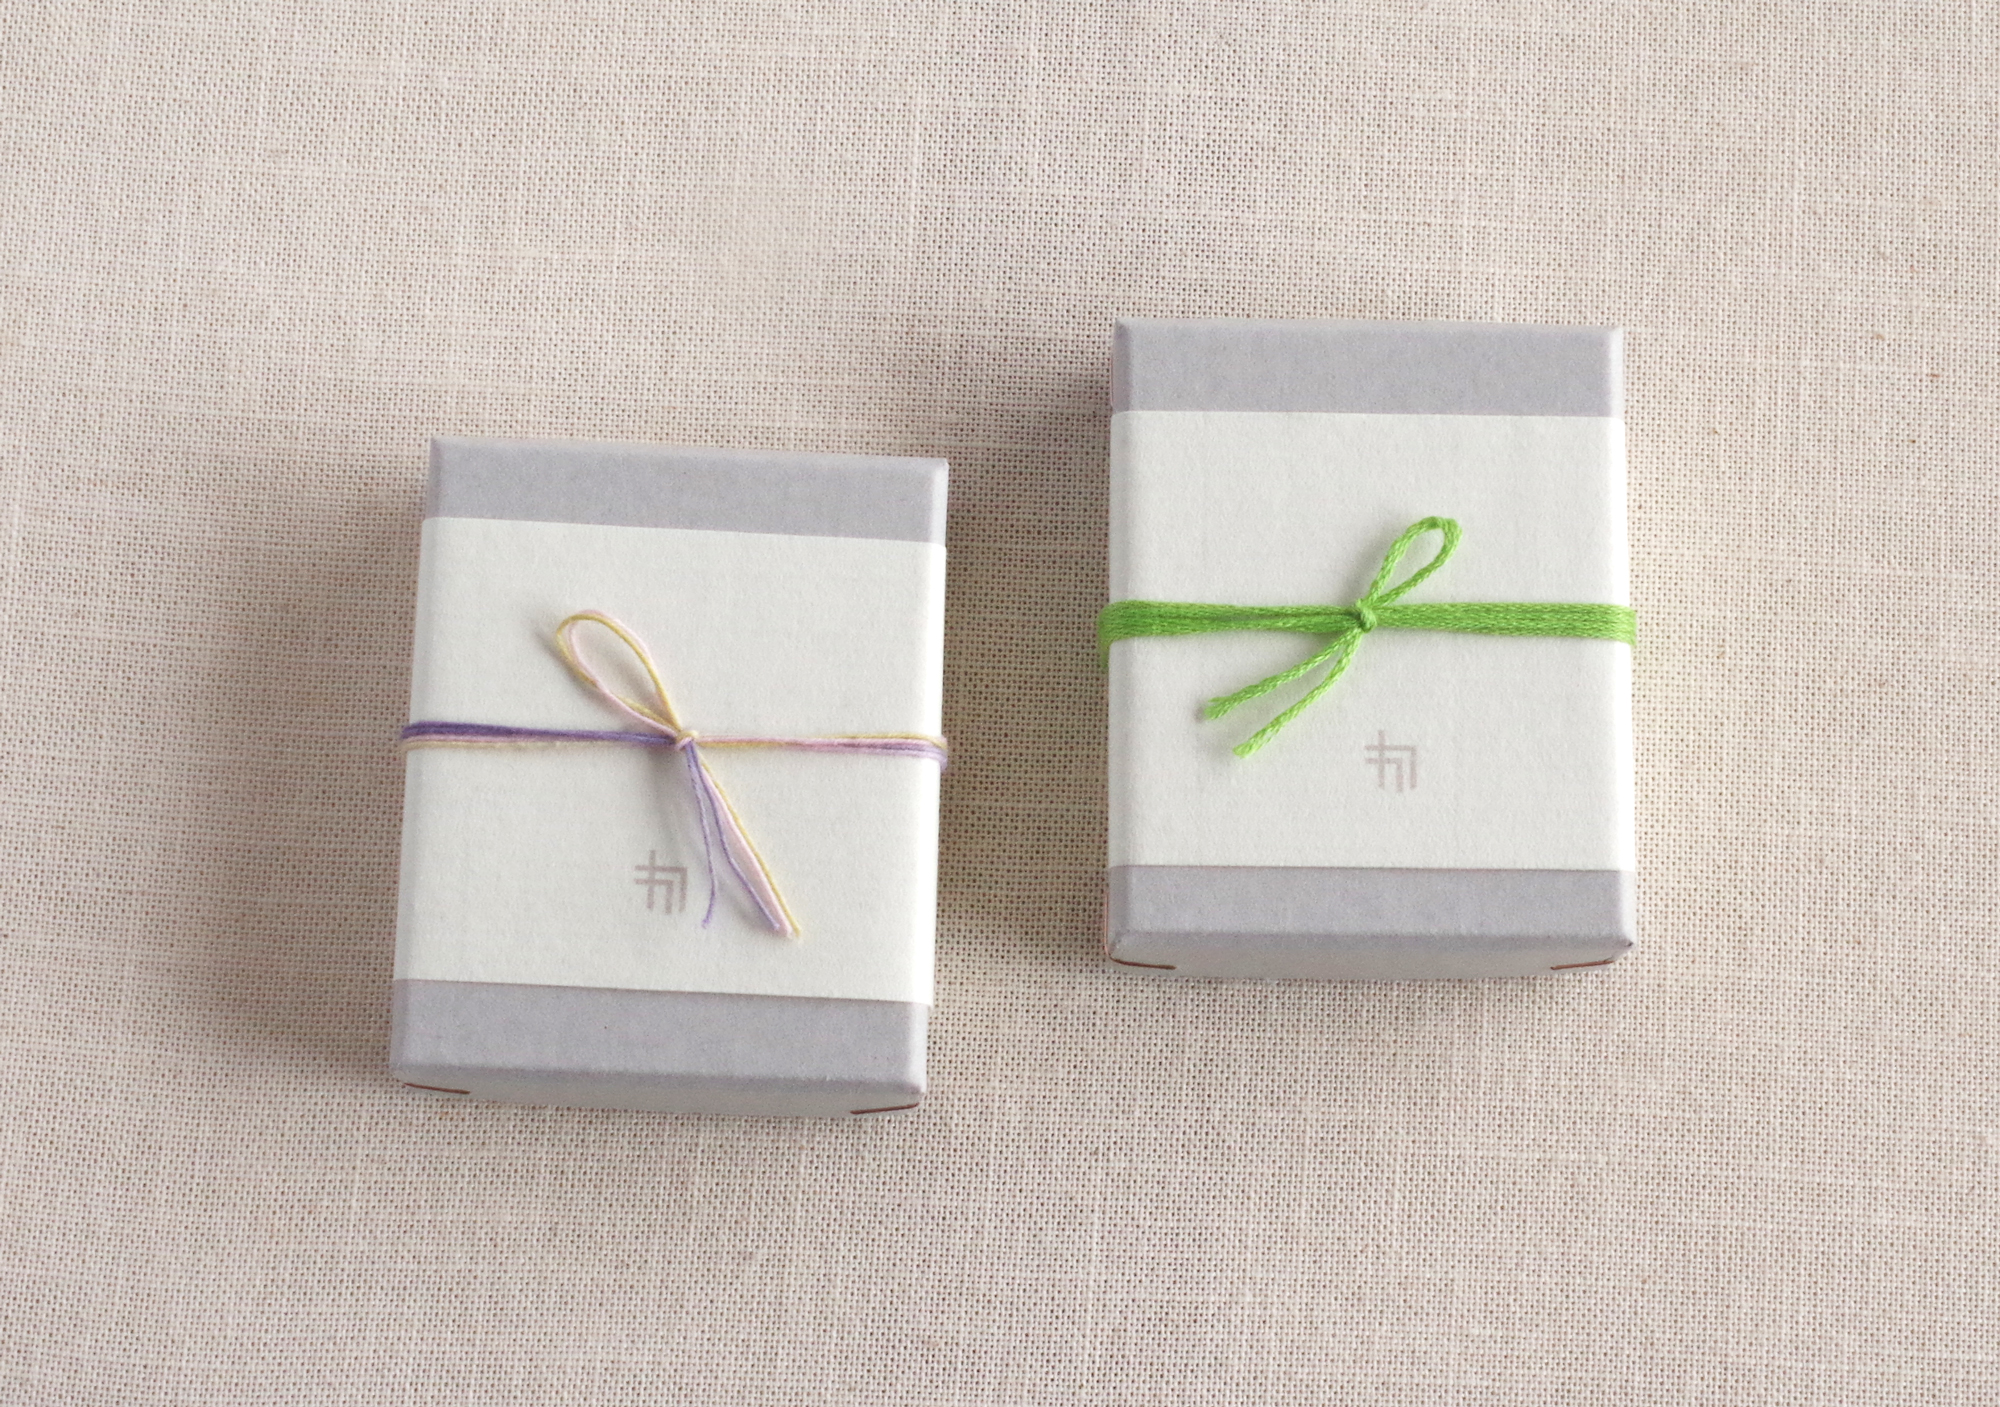 About Gift wrapping / ギフトラッピングについて